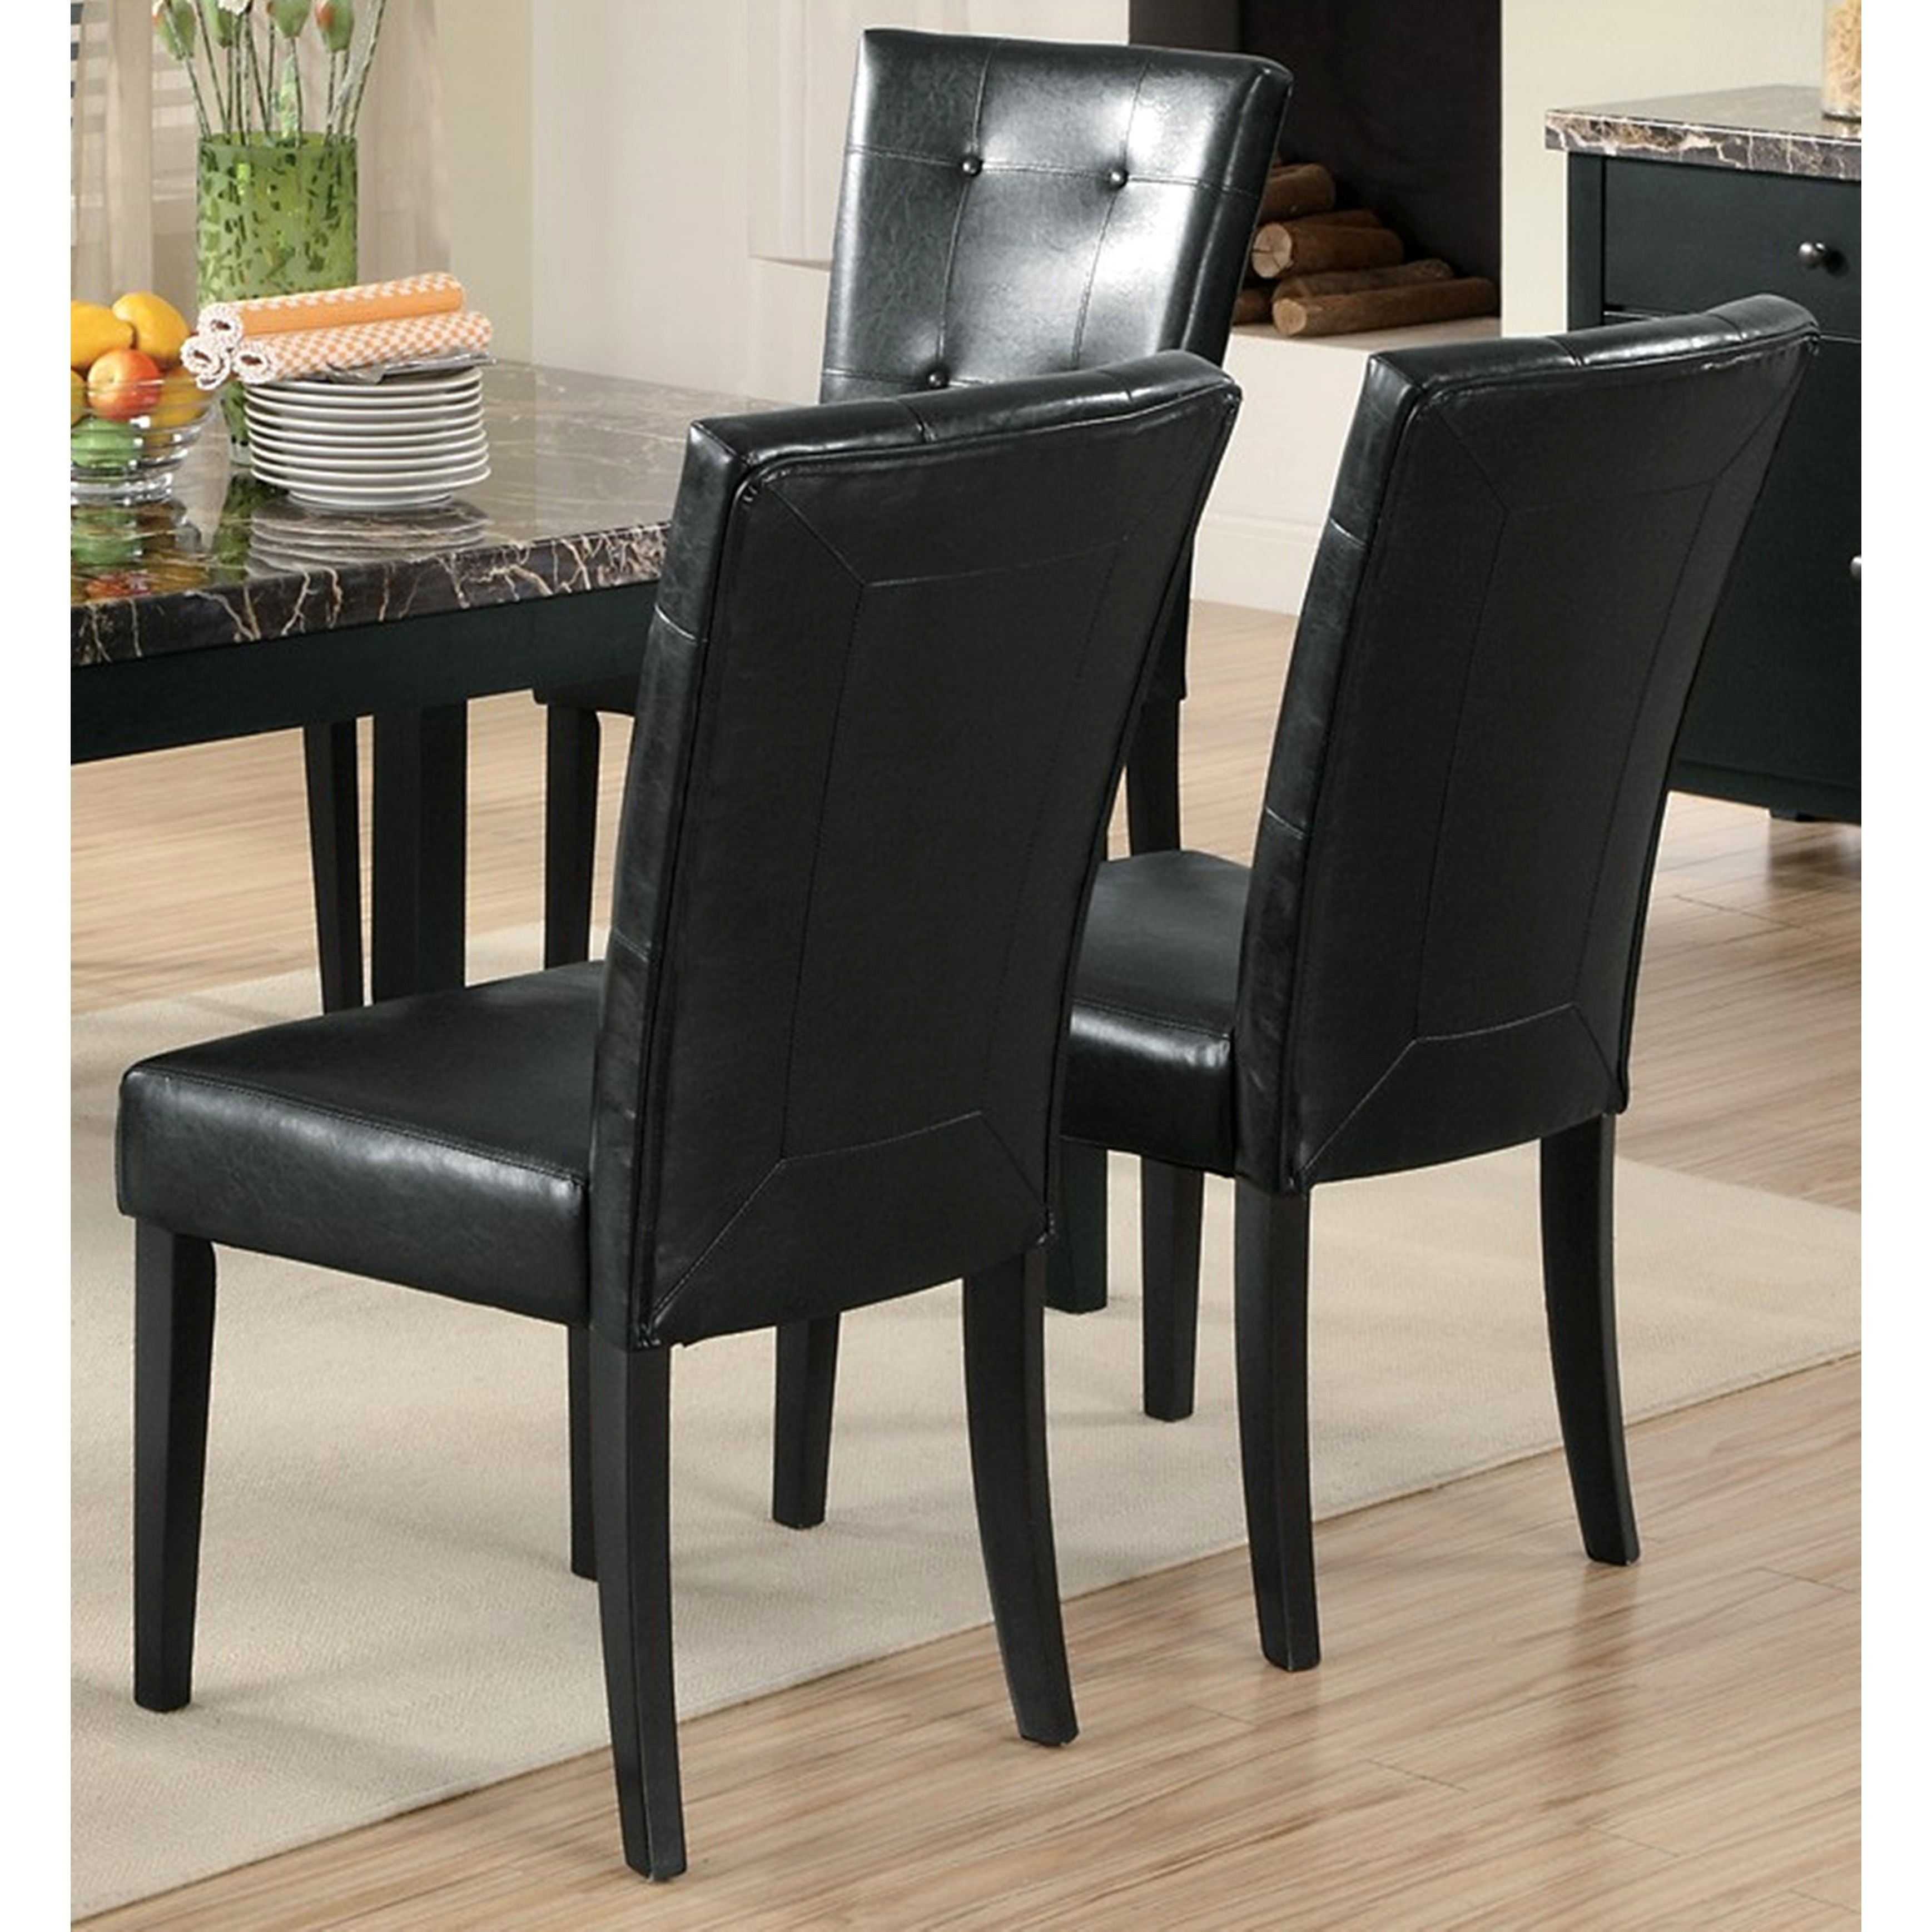 Sasfay Contemporary Style Dining Set with Faux Marble Top...